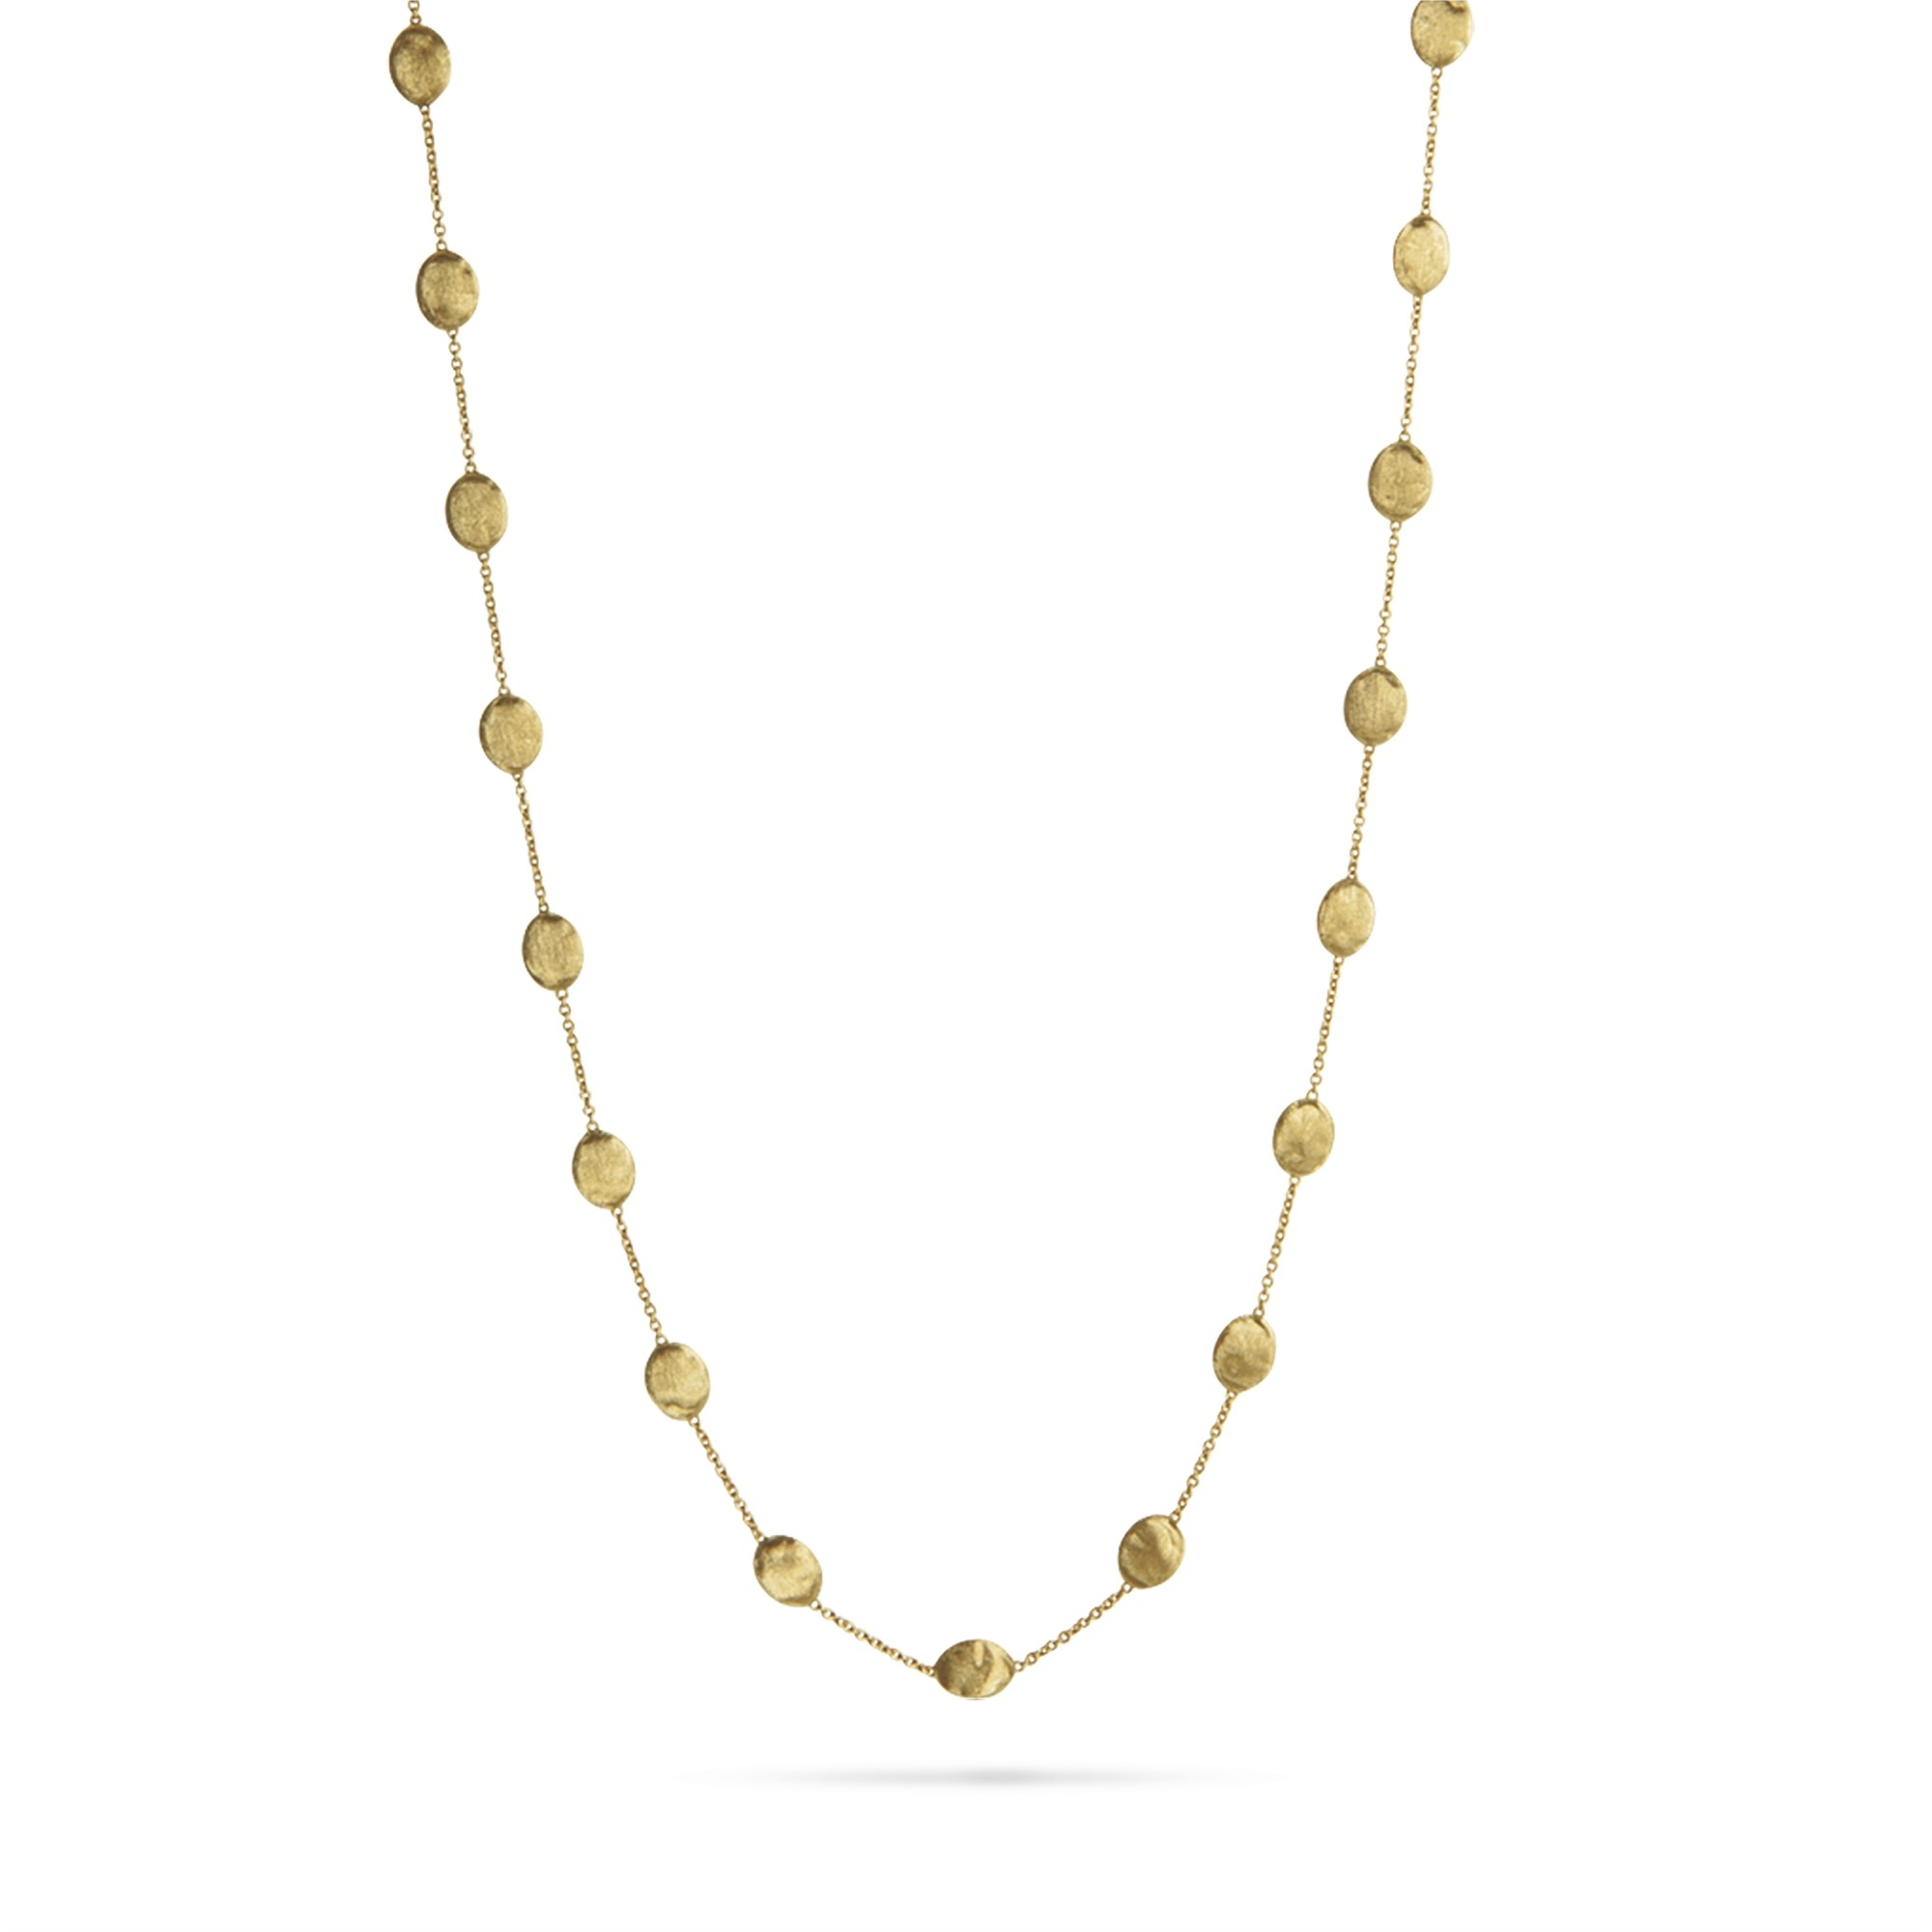 Marco Bicego 18K Yellow Gold    Gold Necklace CB1624 Y